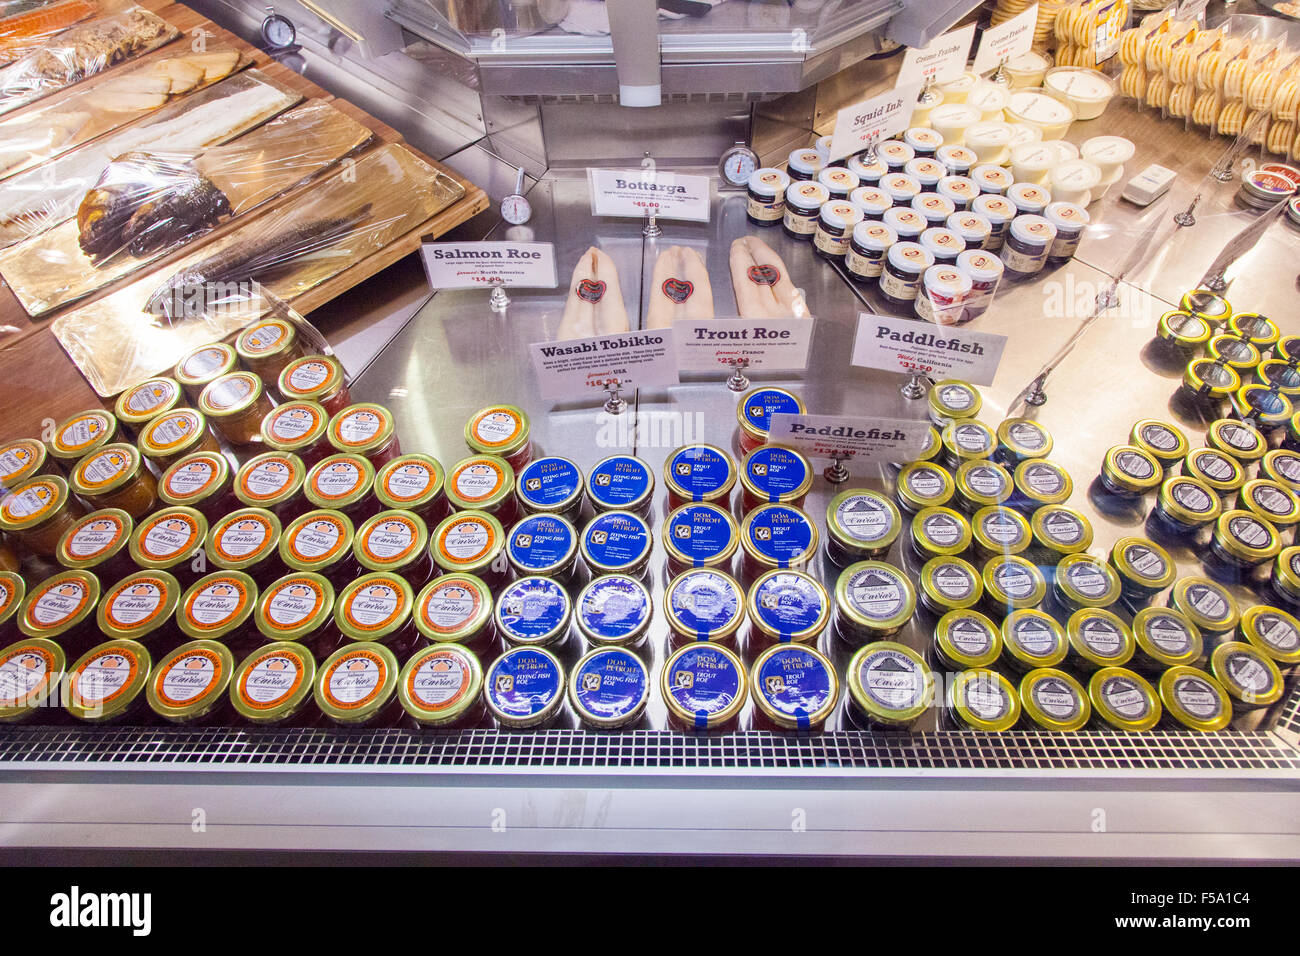 Caviar and fish eggs for sale at The Lobster Place seafood Market  Chelsea Food Market, New York City, United States - Stock Image